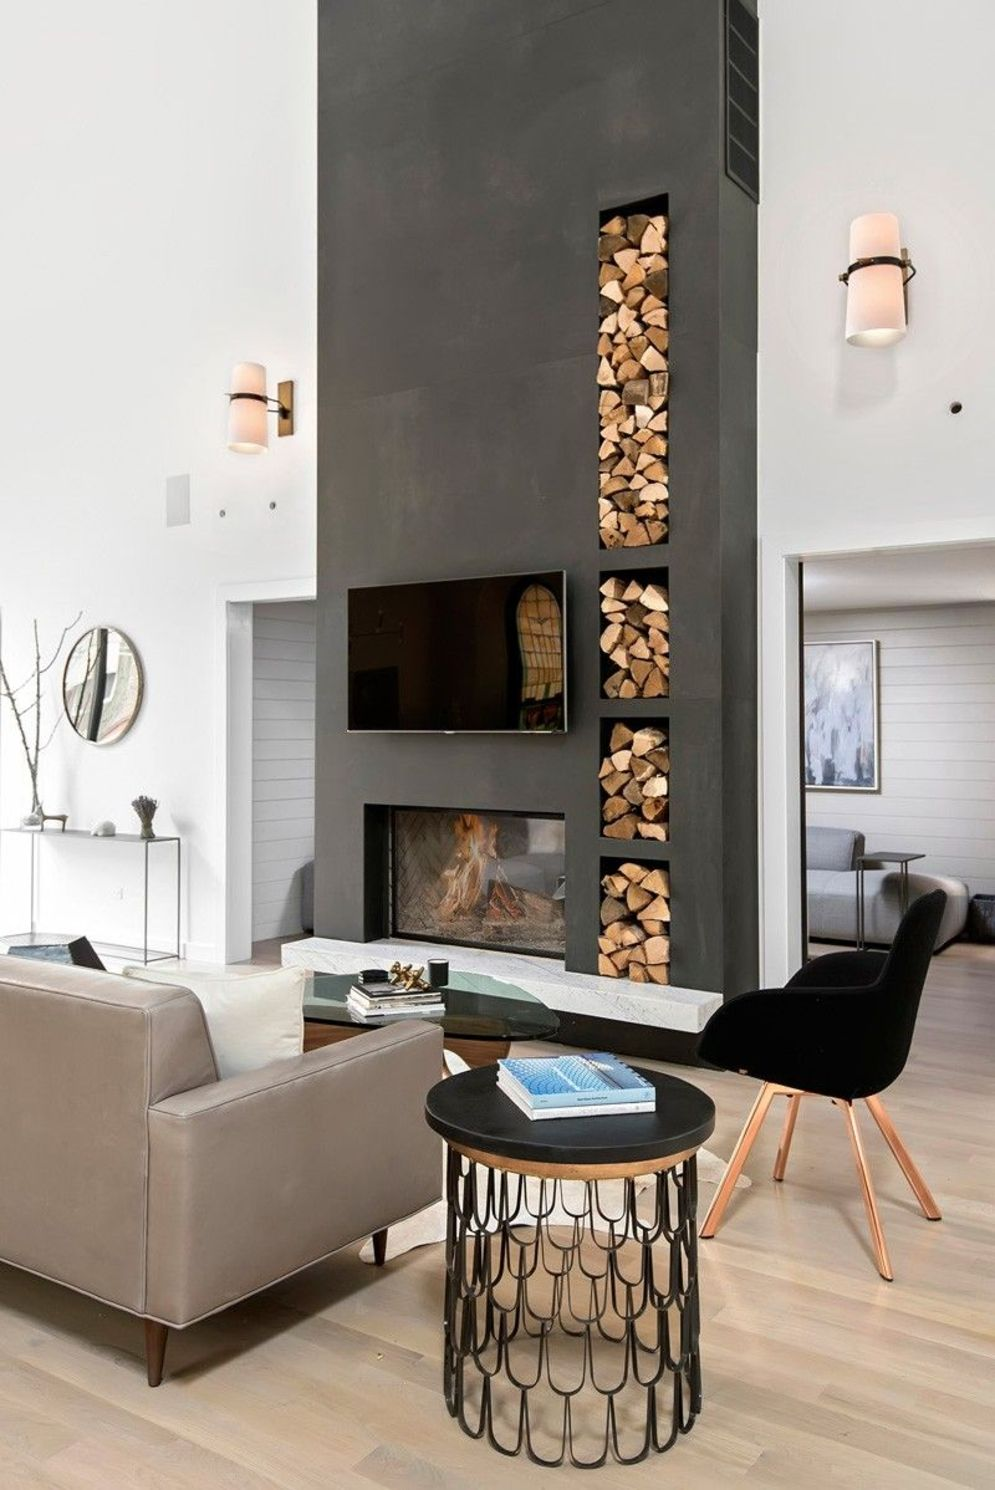 Amazing interior design showing enclosed log burning fireplace along with savvy TV wall Image 2